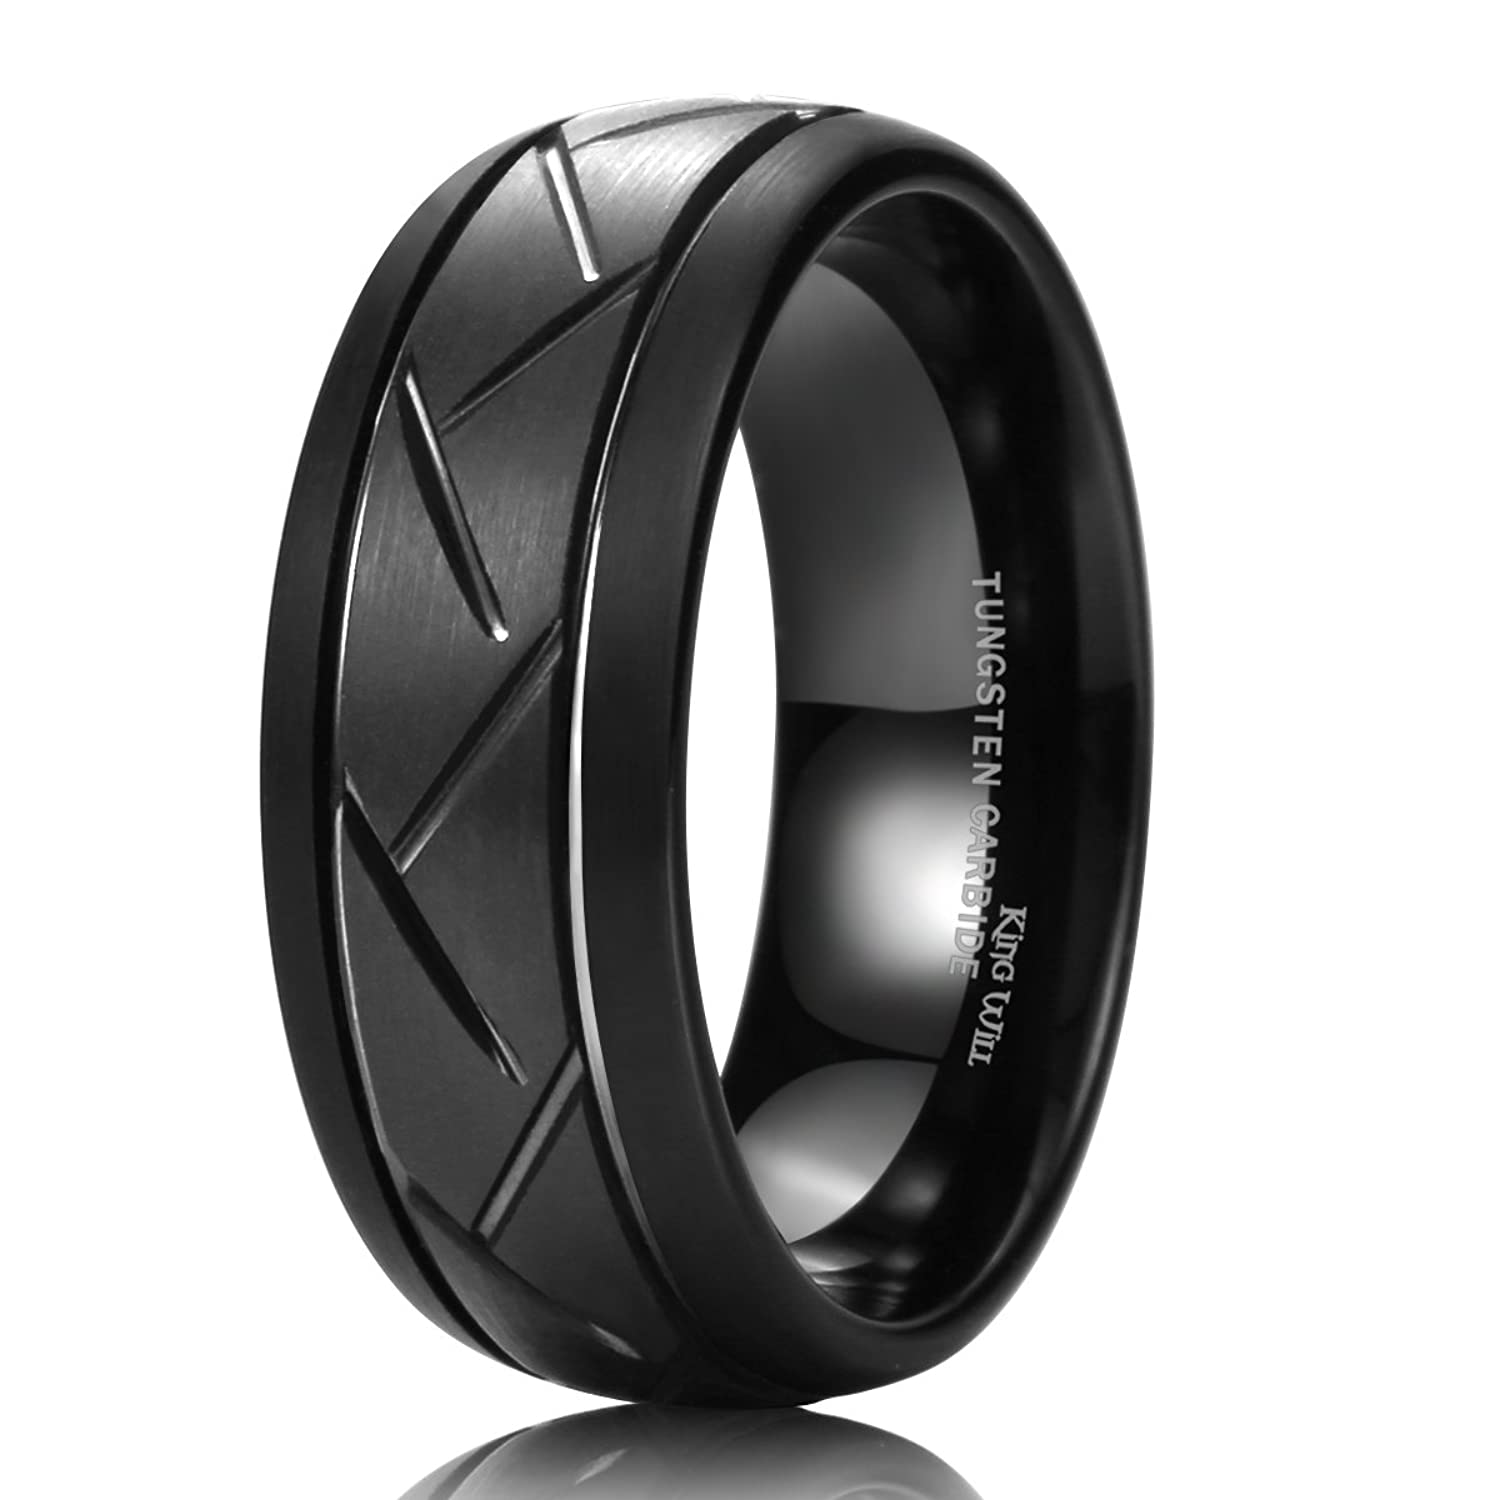 pin engravable band wedding via etsy bands over and personalize engrave silver plated black mens sterling gold ring wide